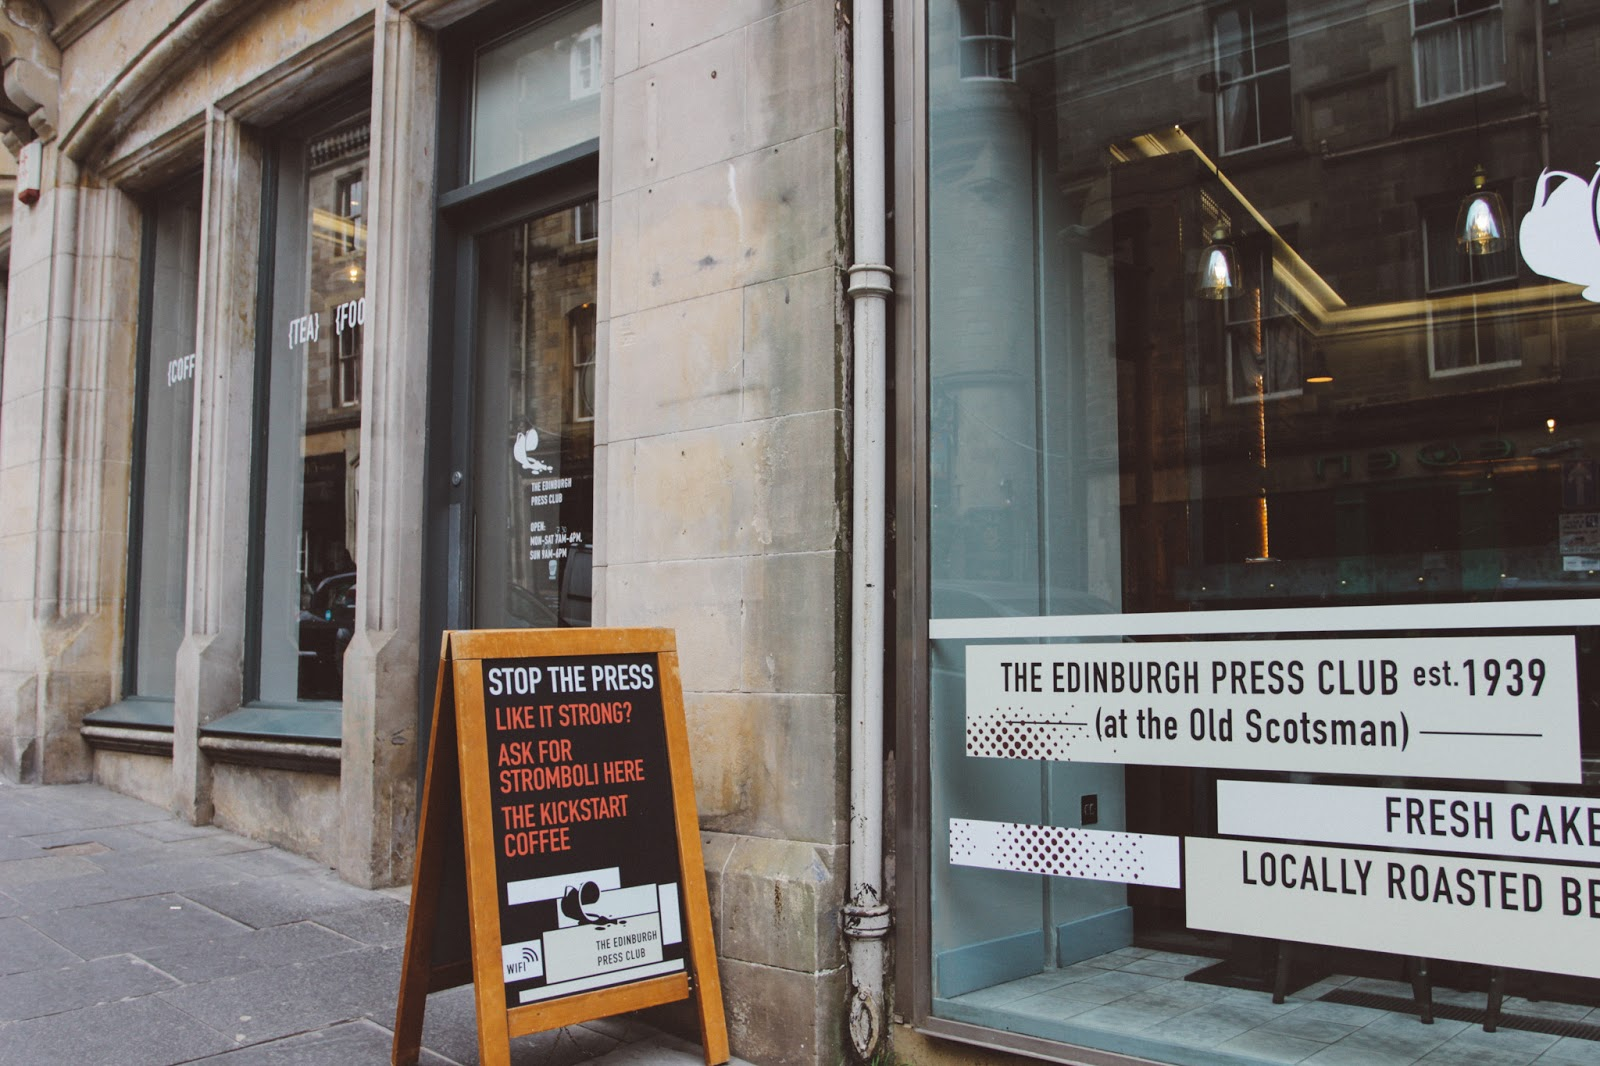 Edinburgh Press Club